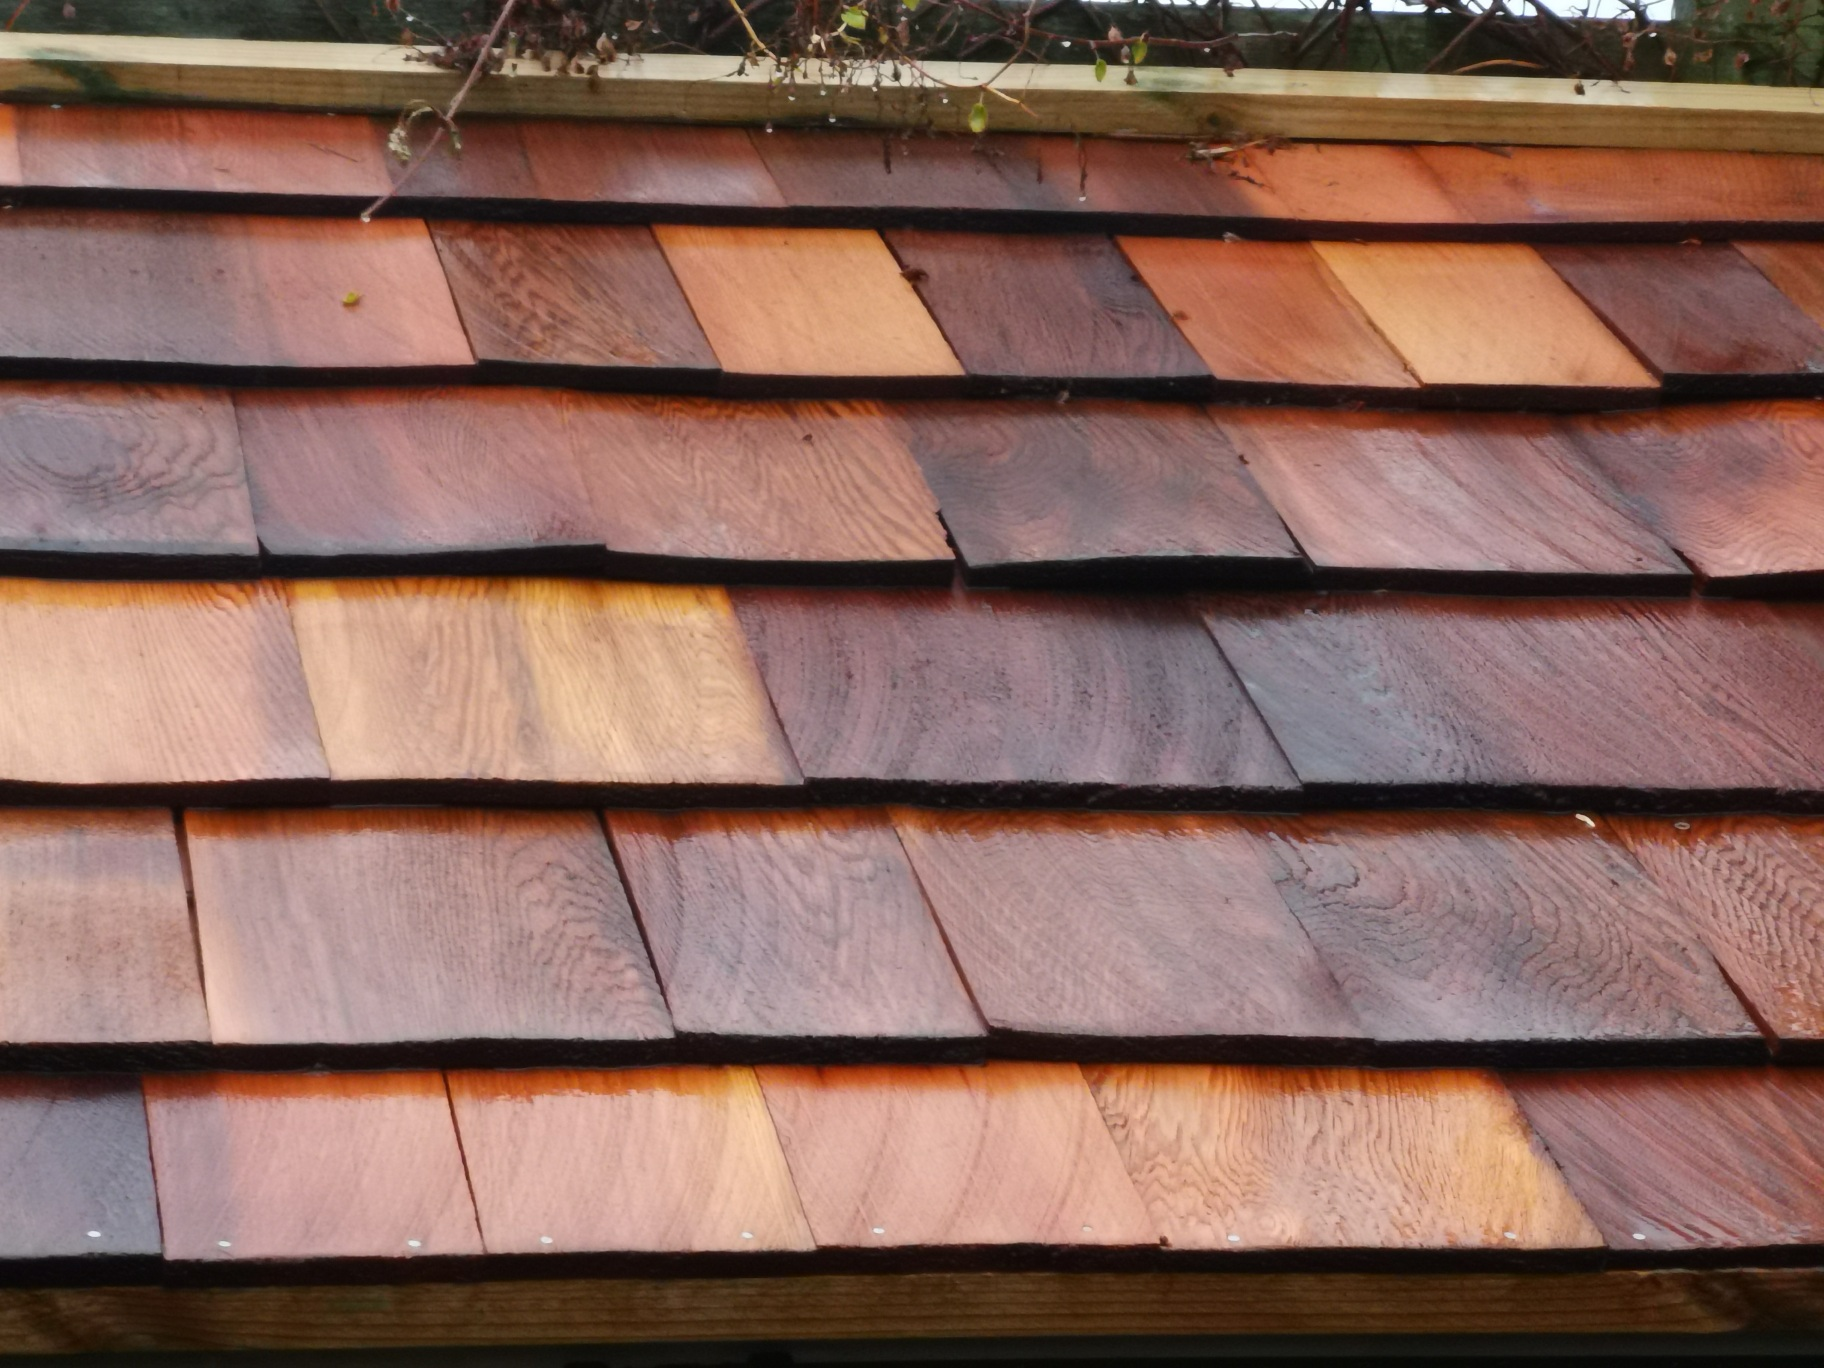 Cedar wood tingles for the roof it should last a few years to say the least,